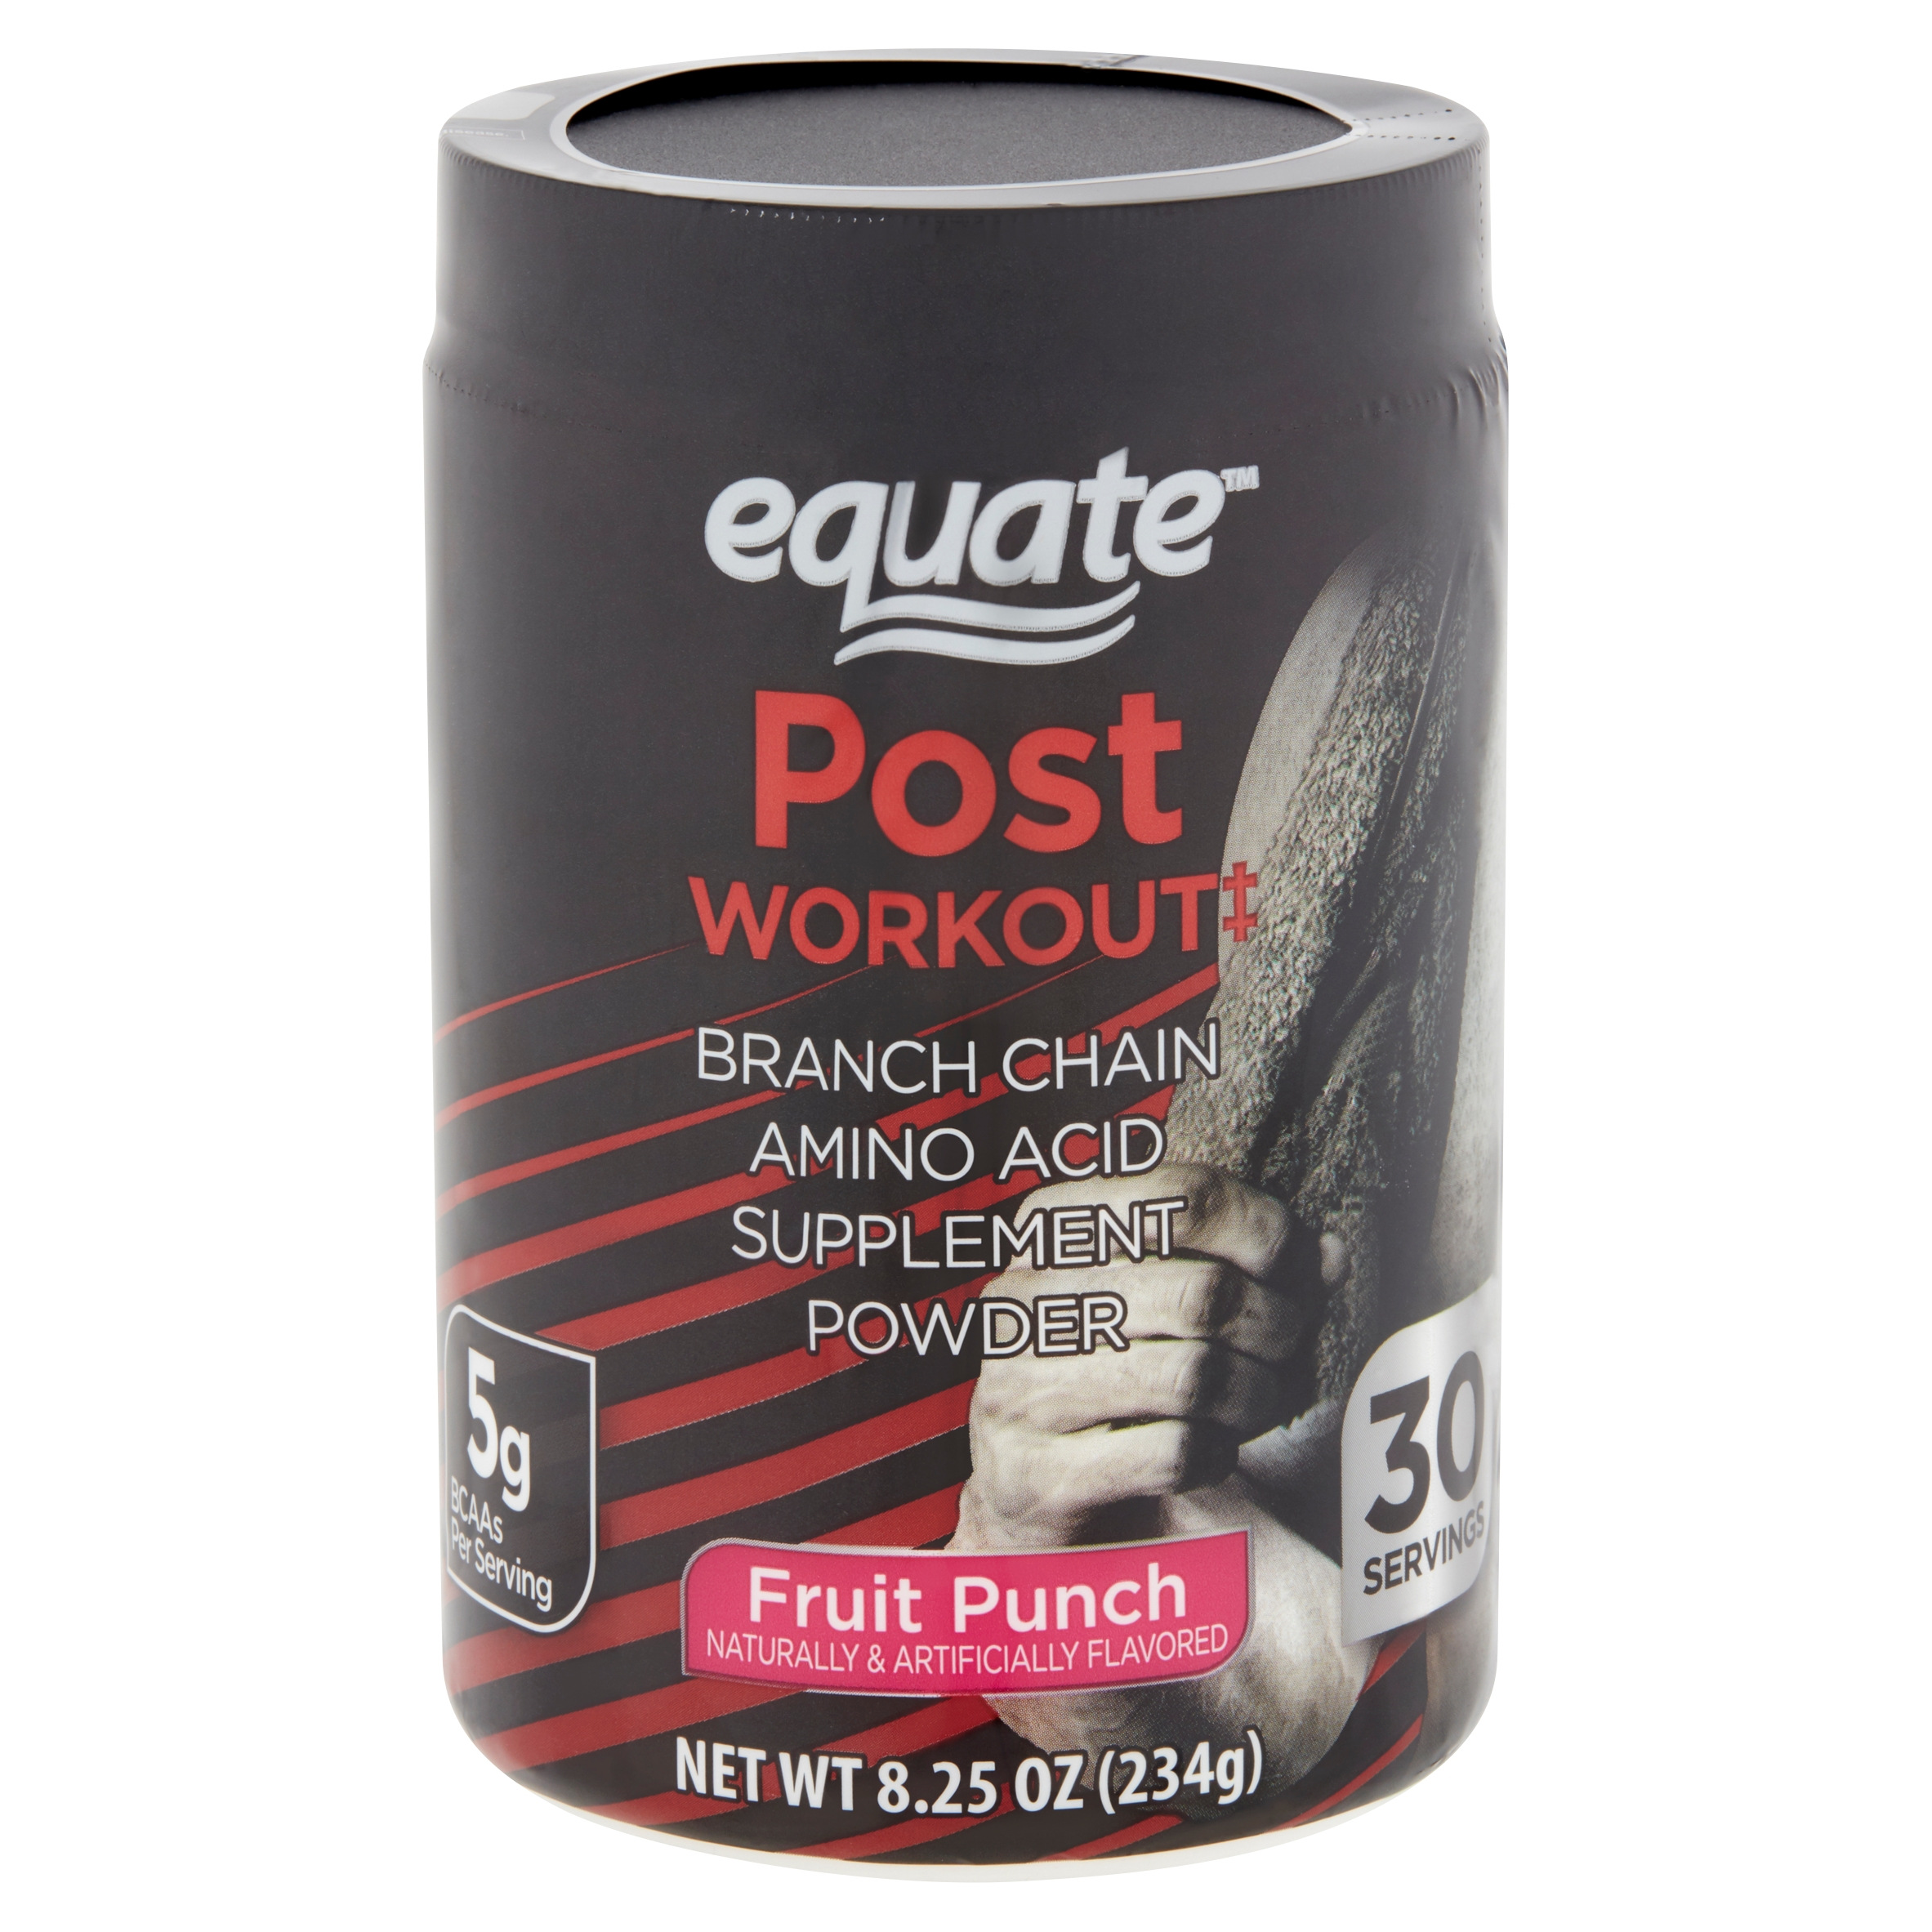 Equate Post Workout Fruit Punch Branch Chain Amino Acid Supplement Powder, 8.25 oz